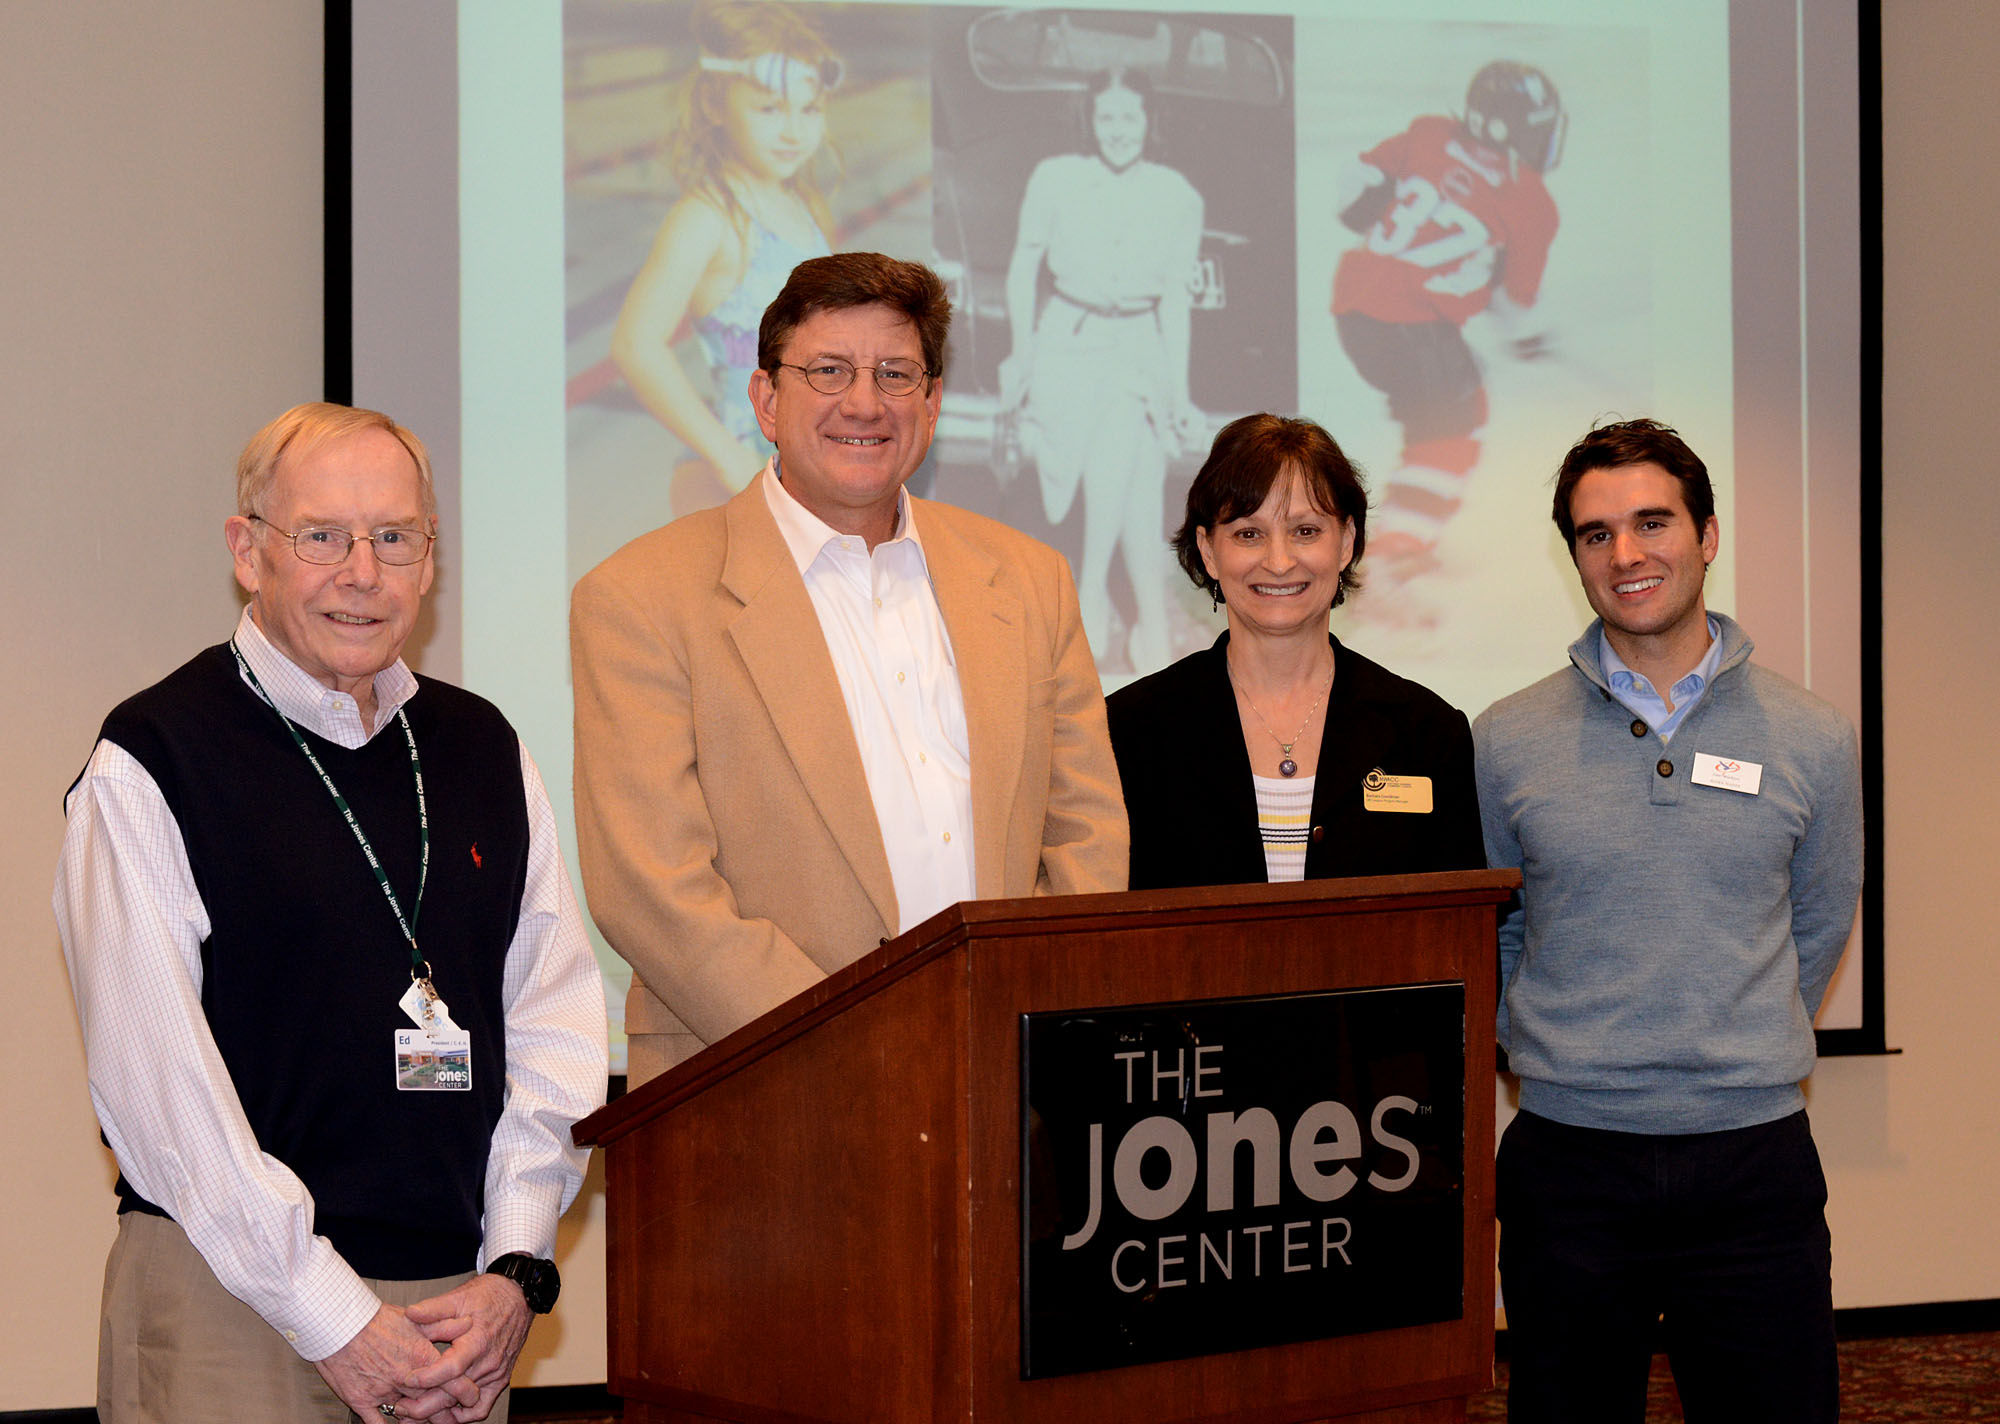 Ed Clifford of The Jones Center; Mike Fohner of Youth Strategies; Barbara Goodman of NWACC and Alden Napier of Camp War Eagle